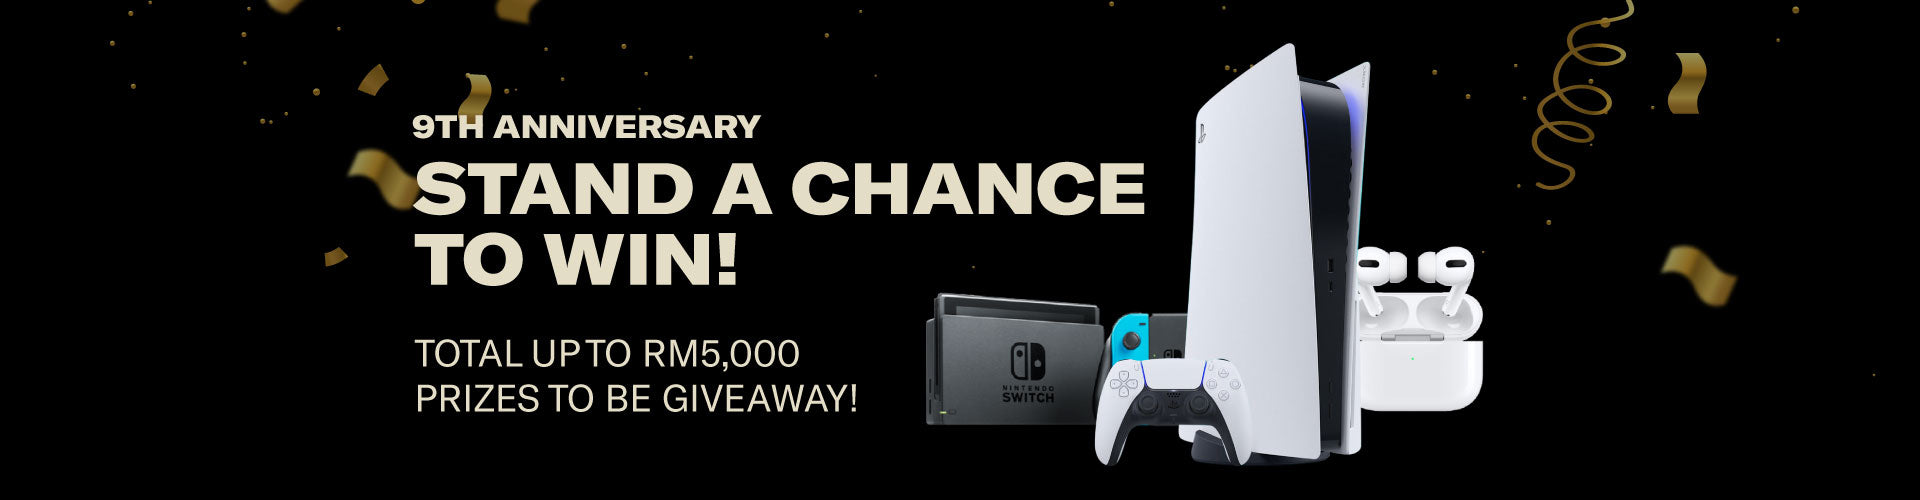 9th Anniversary Giveaway